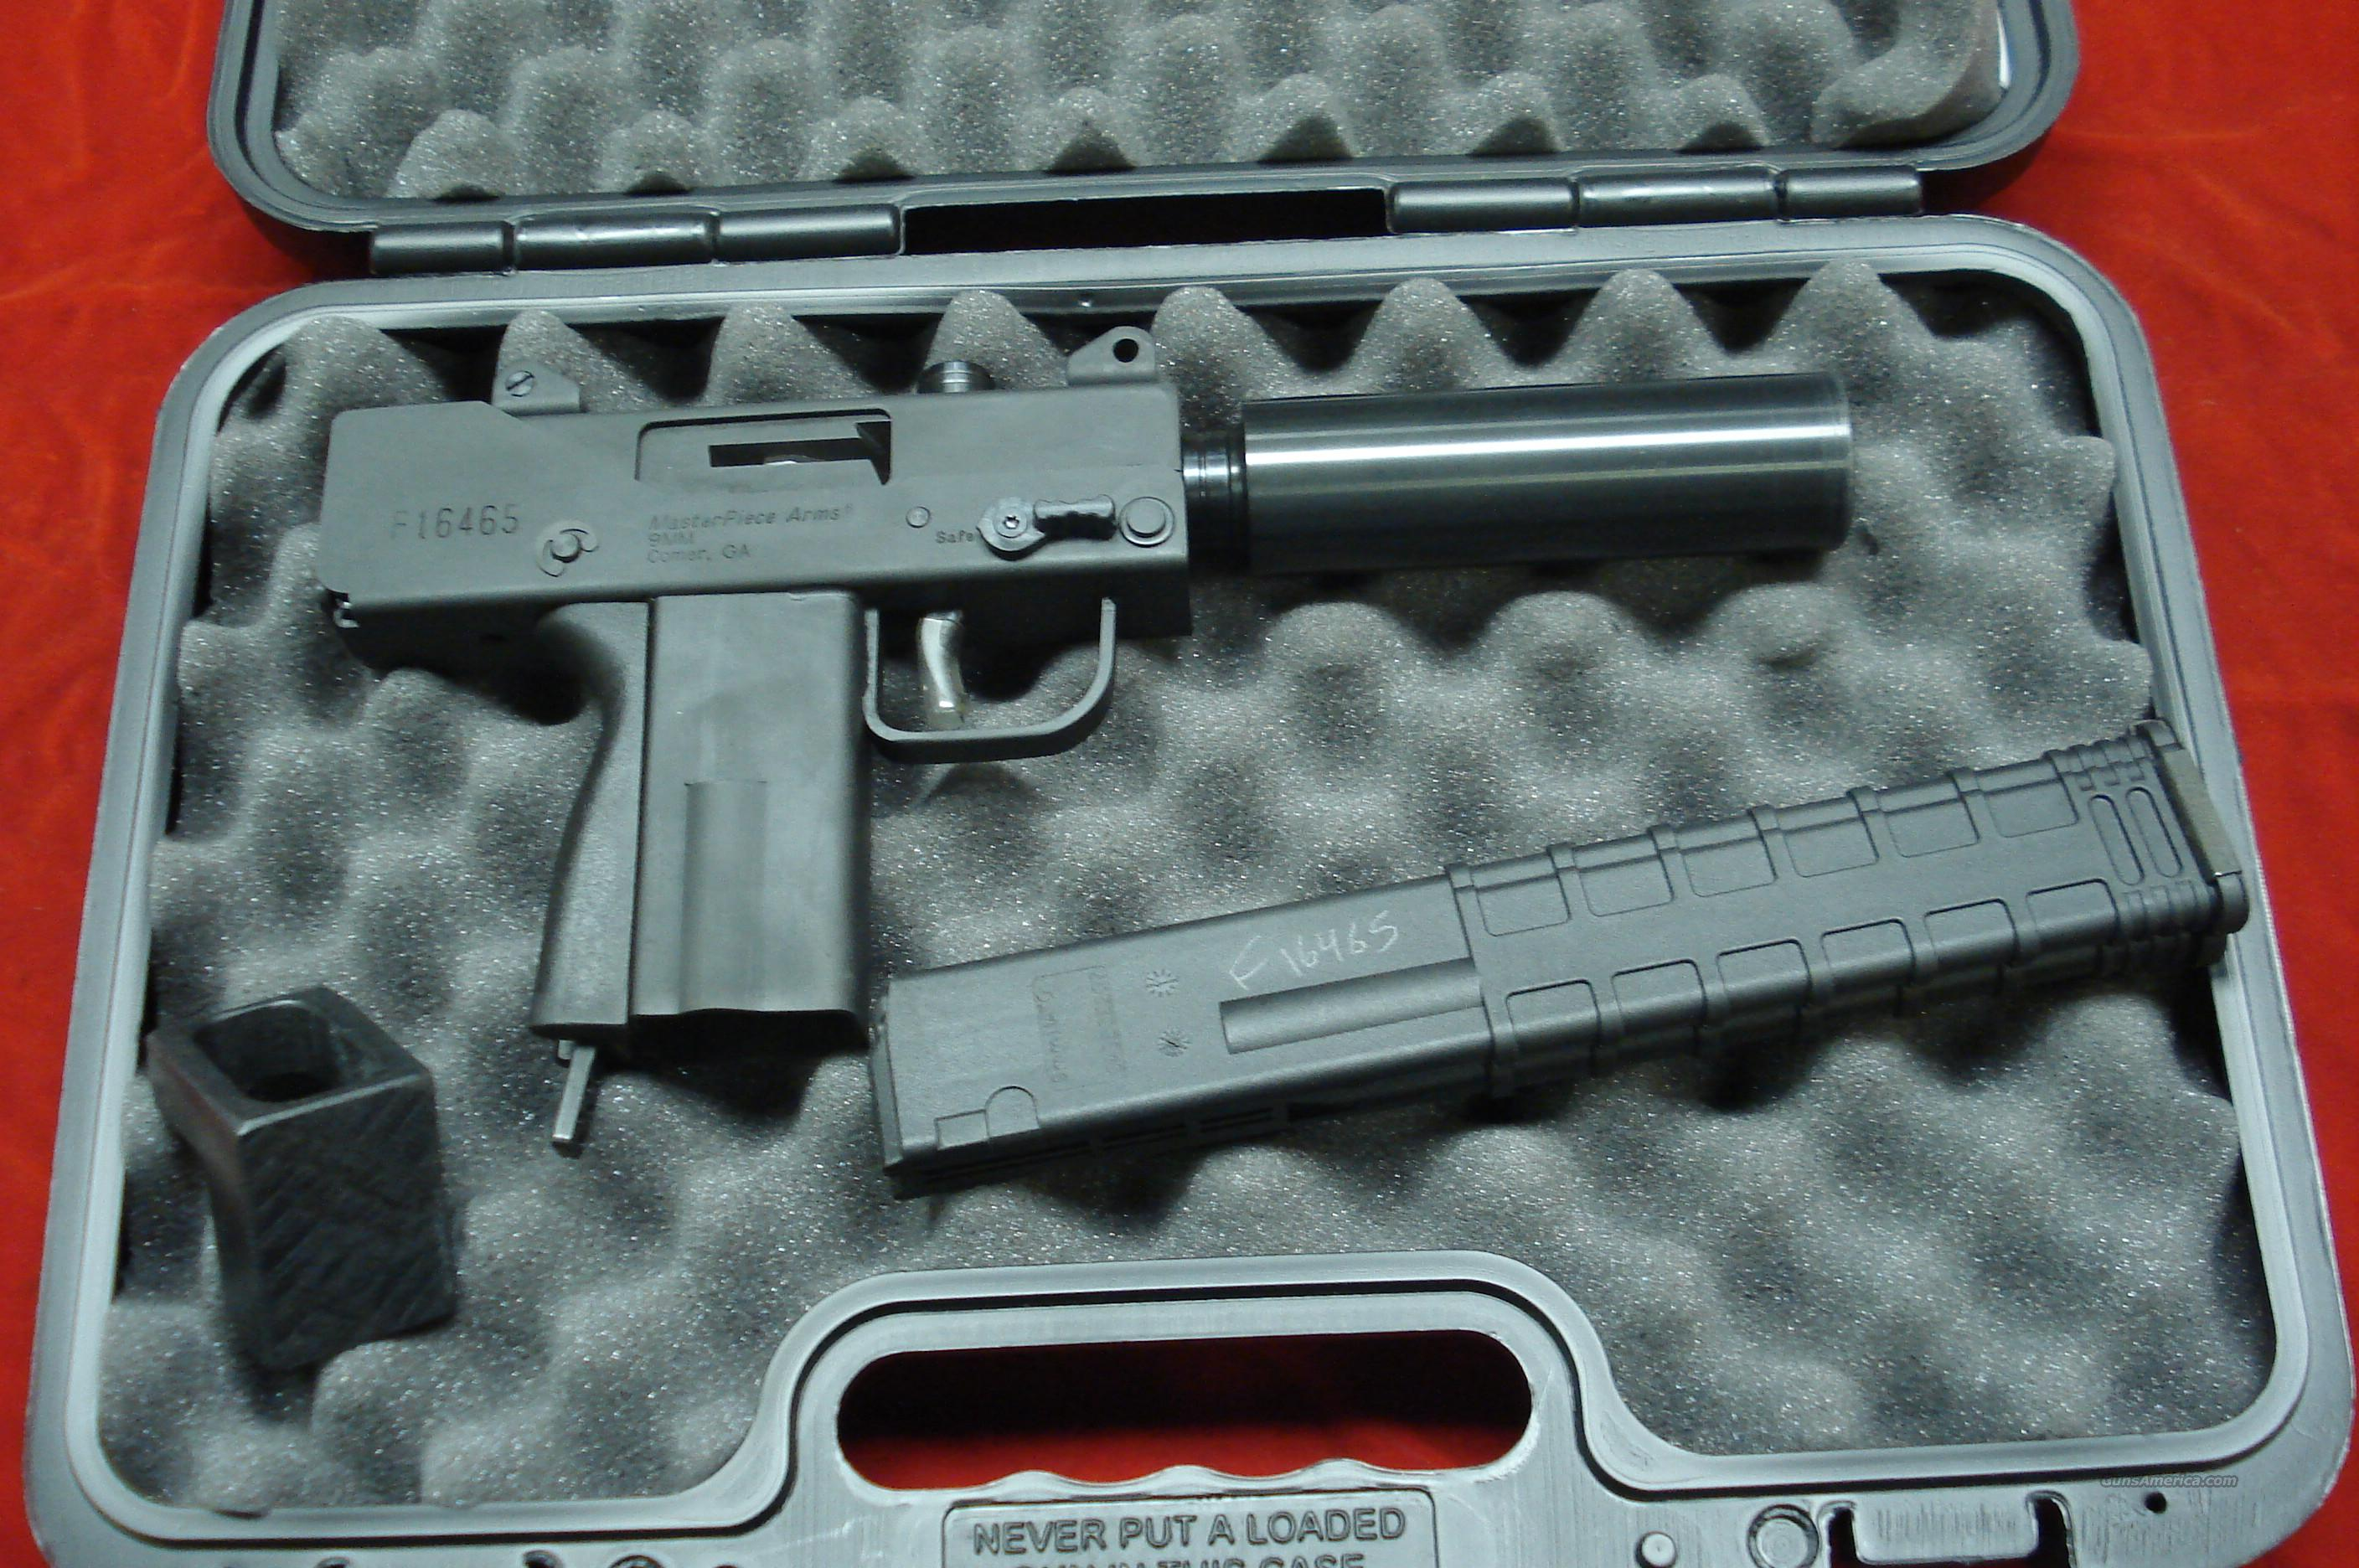 Masterpiece Arms Defender 9mm Side Cocking: For Sale